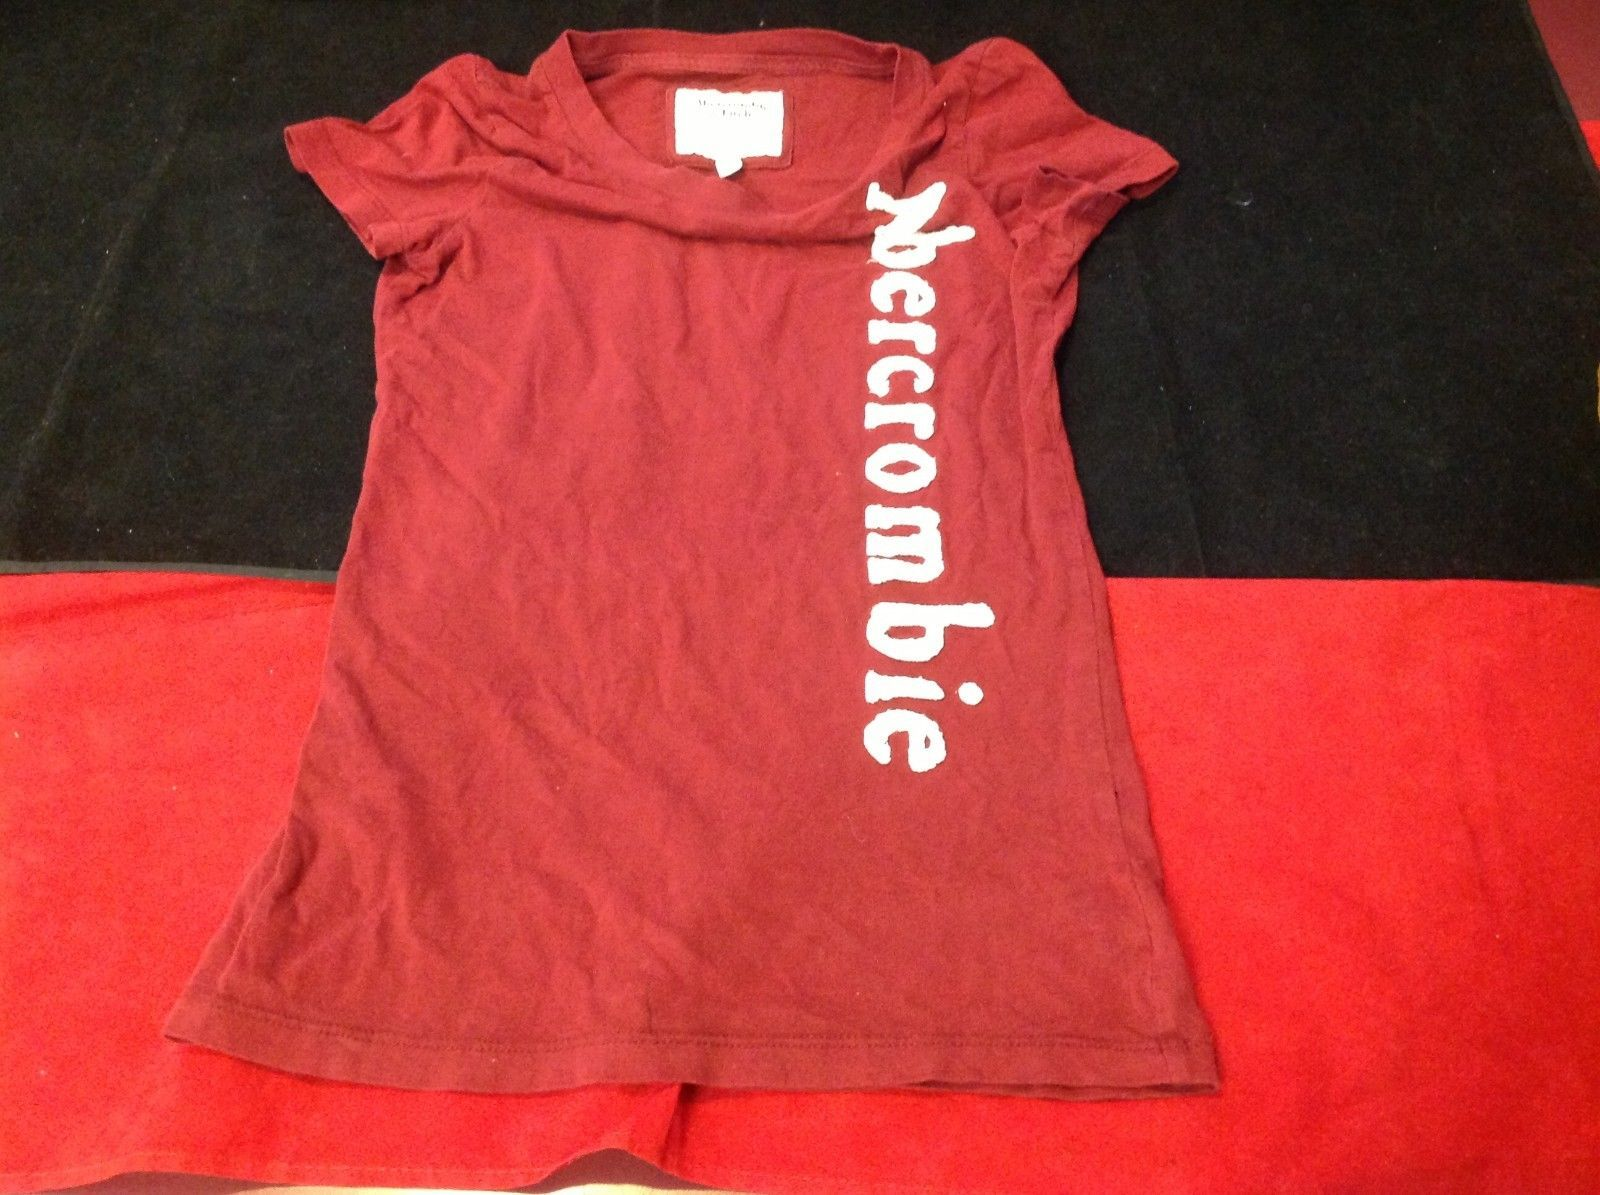 Abercrombie & Fitch short sleeve color maroon